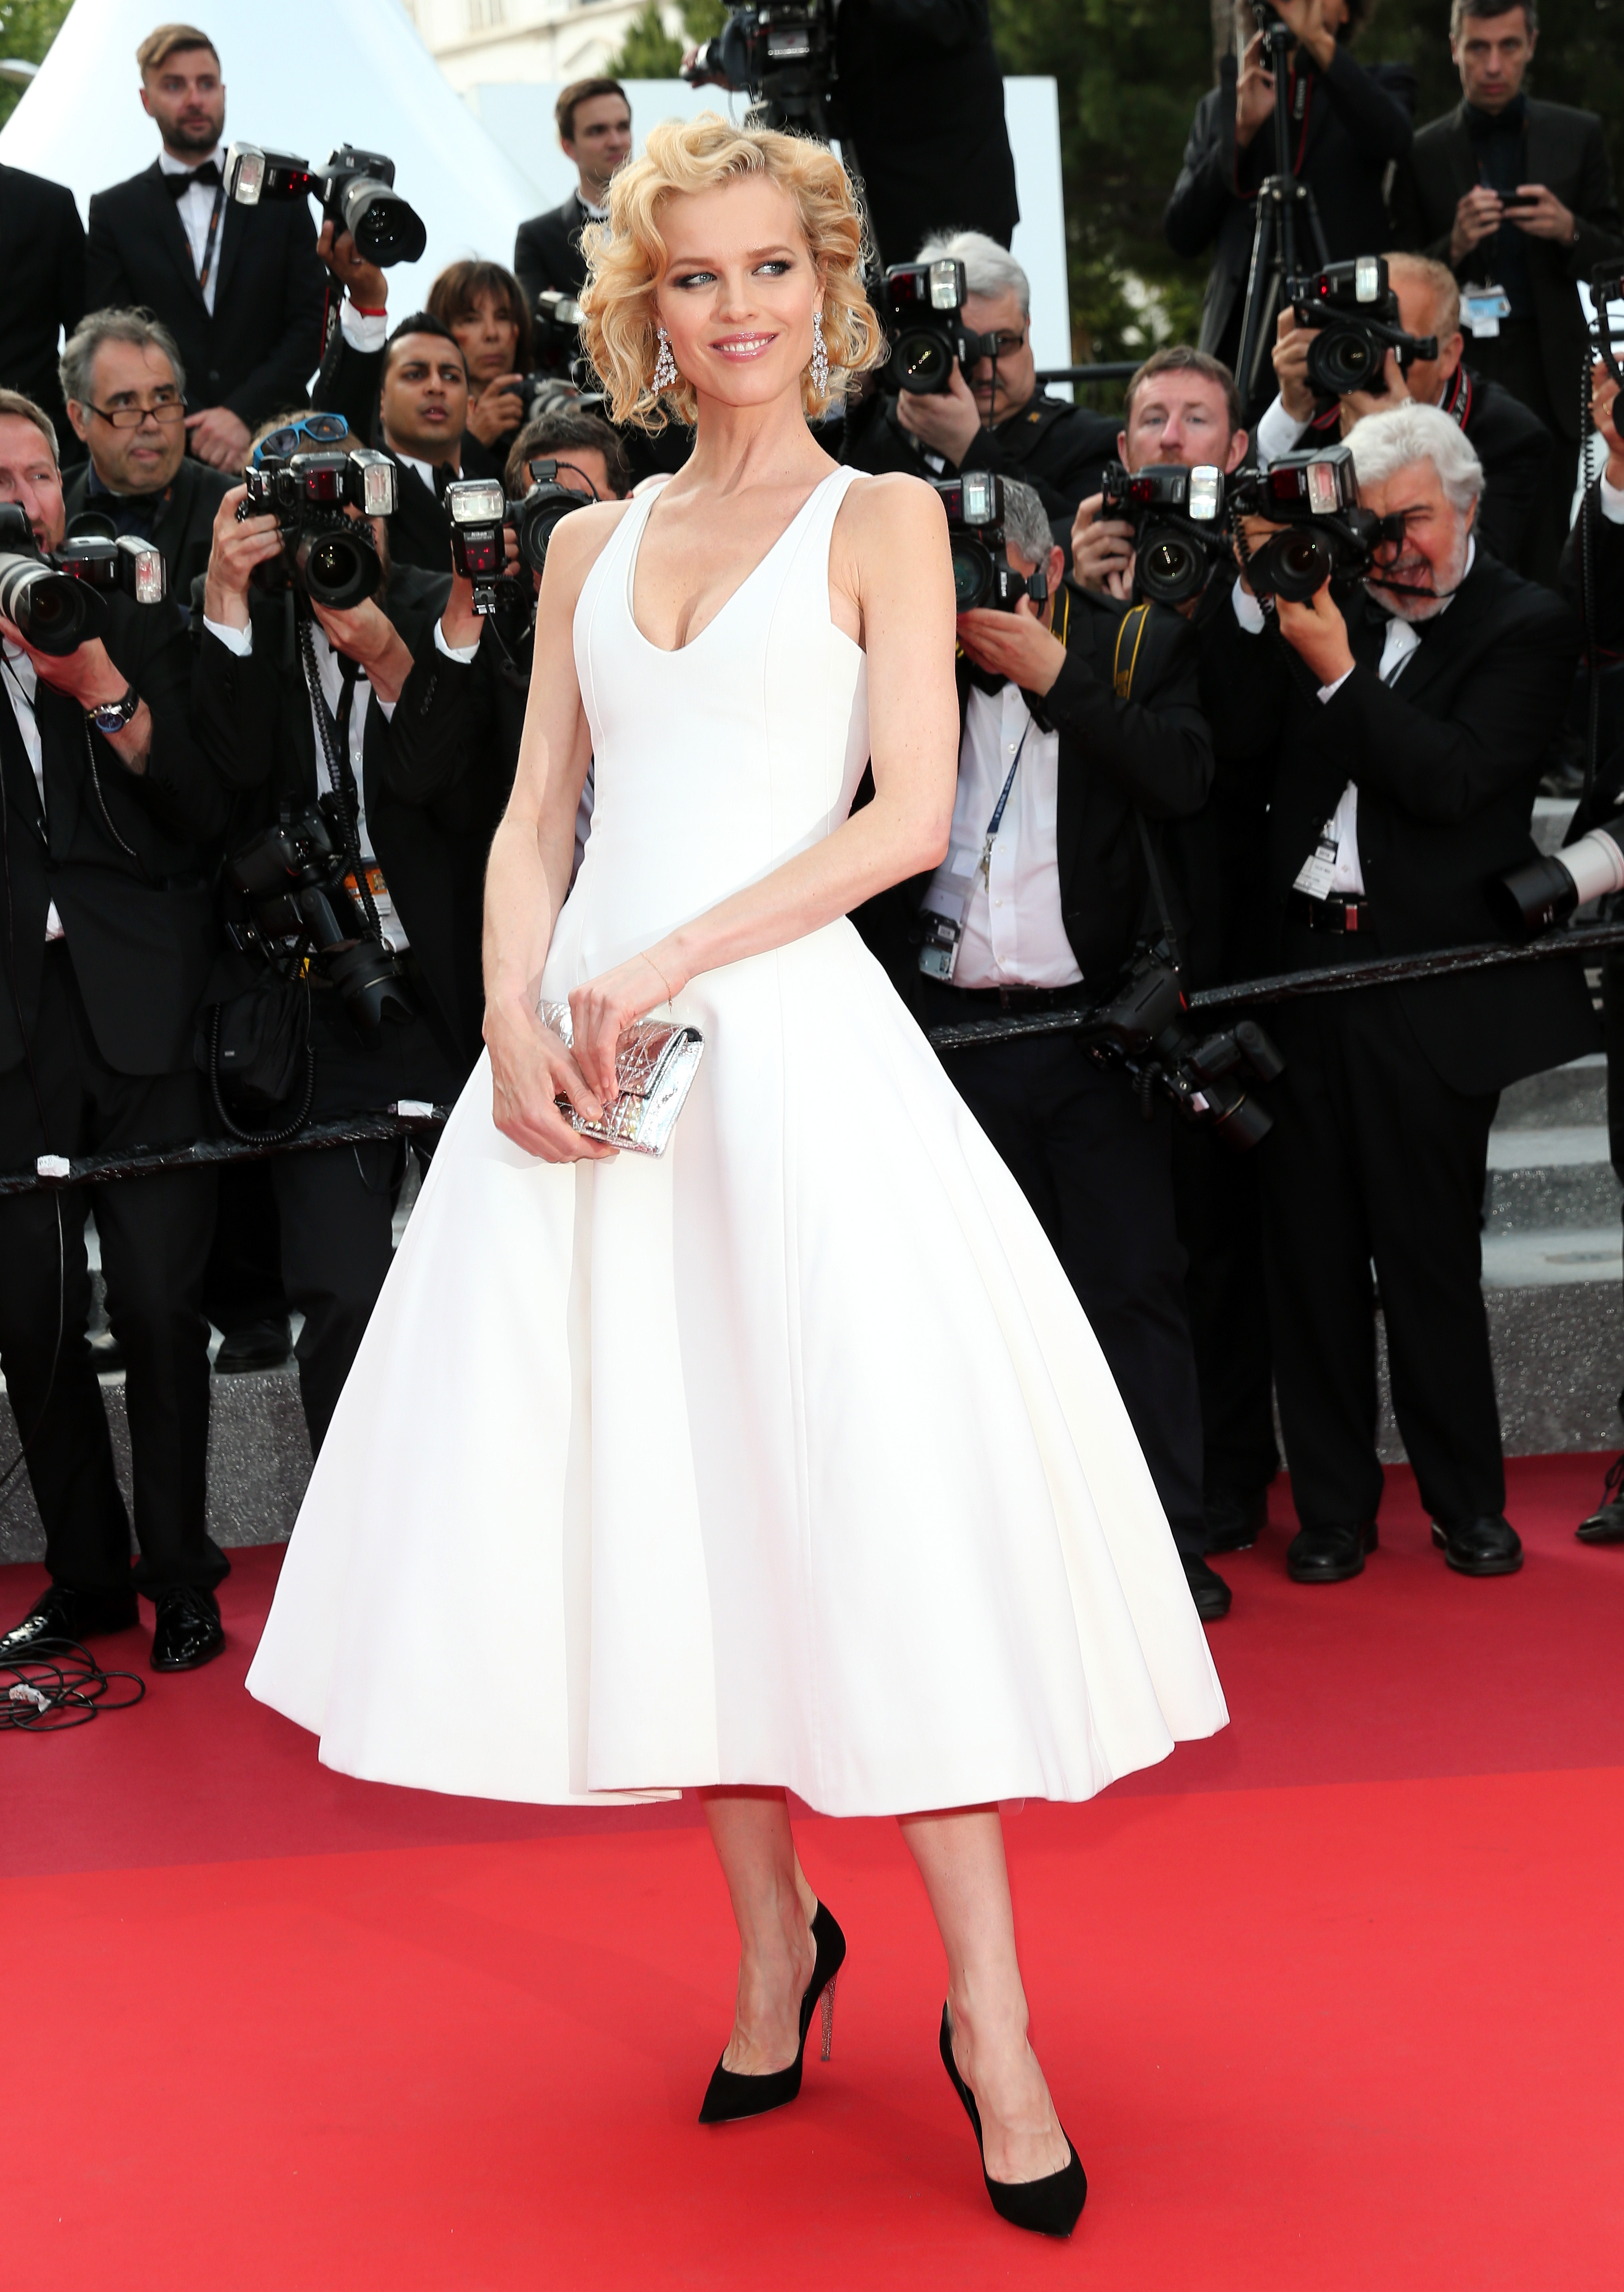 """CANNES, FRANCE - MAY 18: Eva Herzigova attends """"The Unknown Girl (La Fille Inconnue)"""" Premiere during the 69th annual Cannes Film Festival at the Palais des Festivals on May 18, 2016 in Cannes, France. (Photo by Gisela Schober/Getty Images)"""